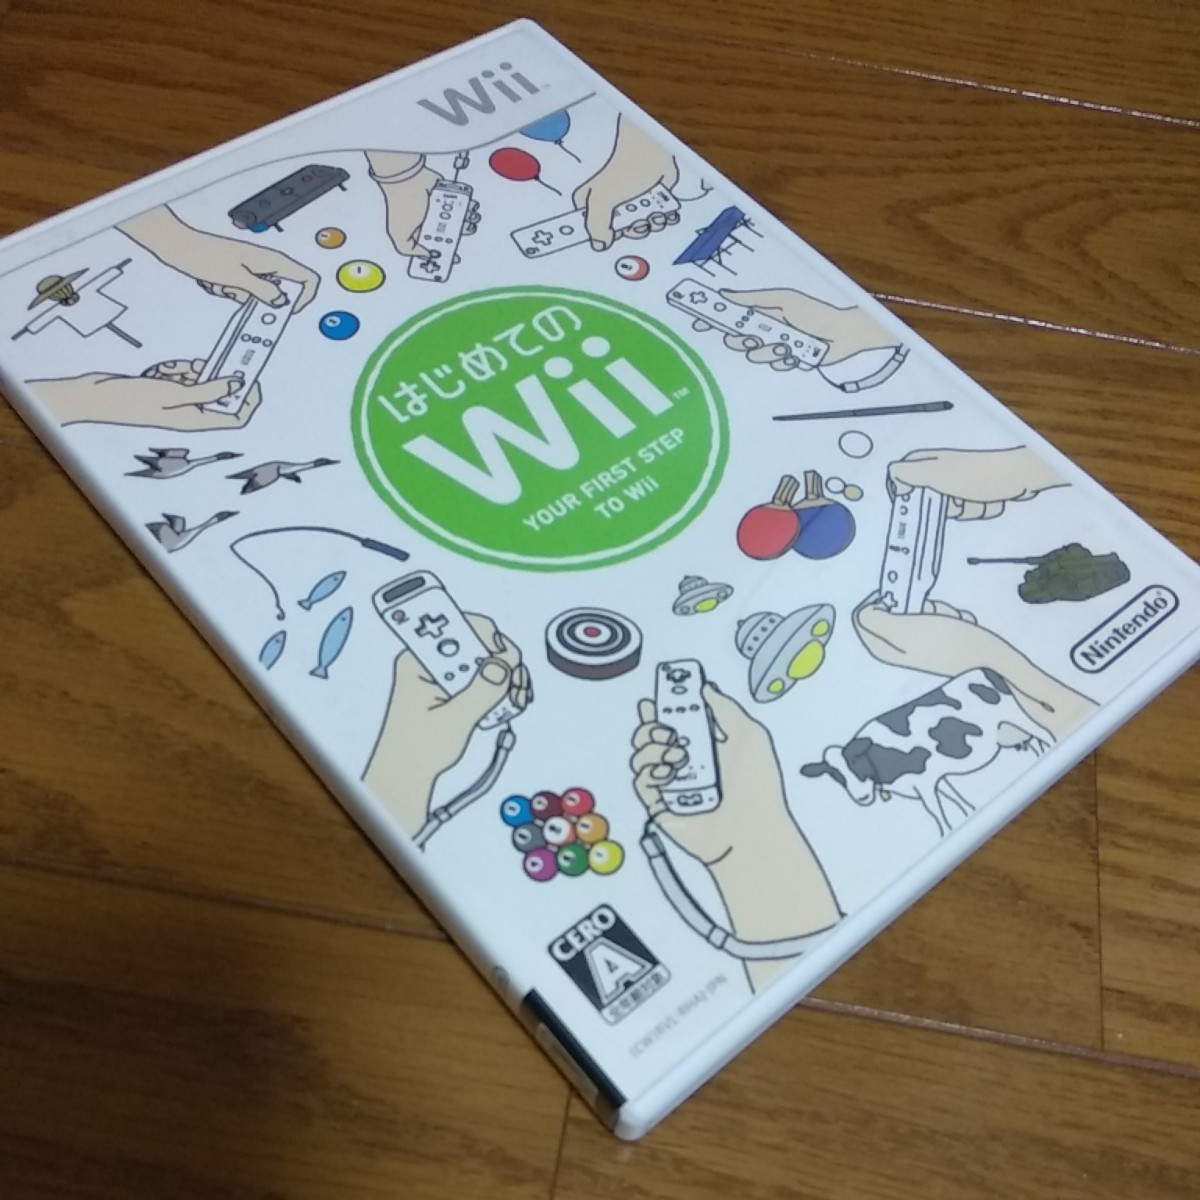 Wii はじめてのWii